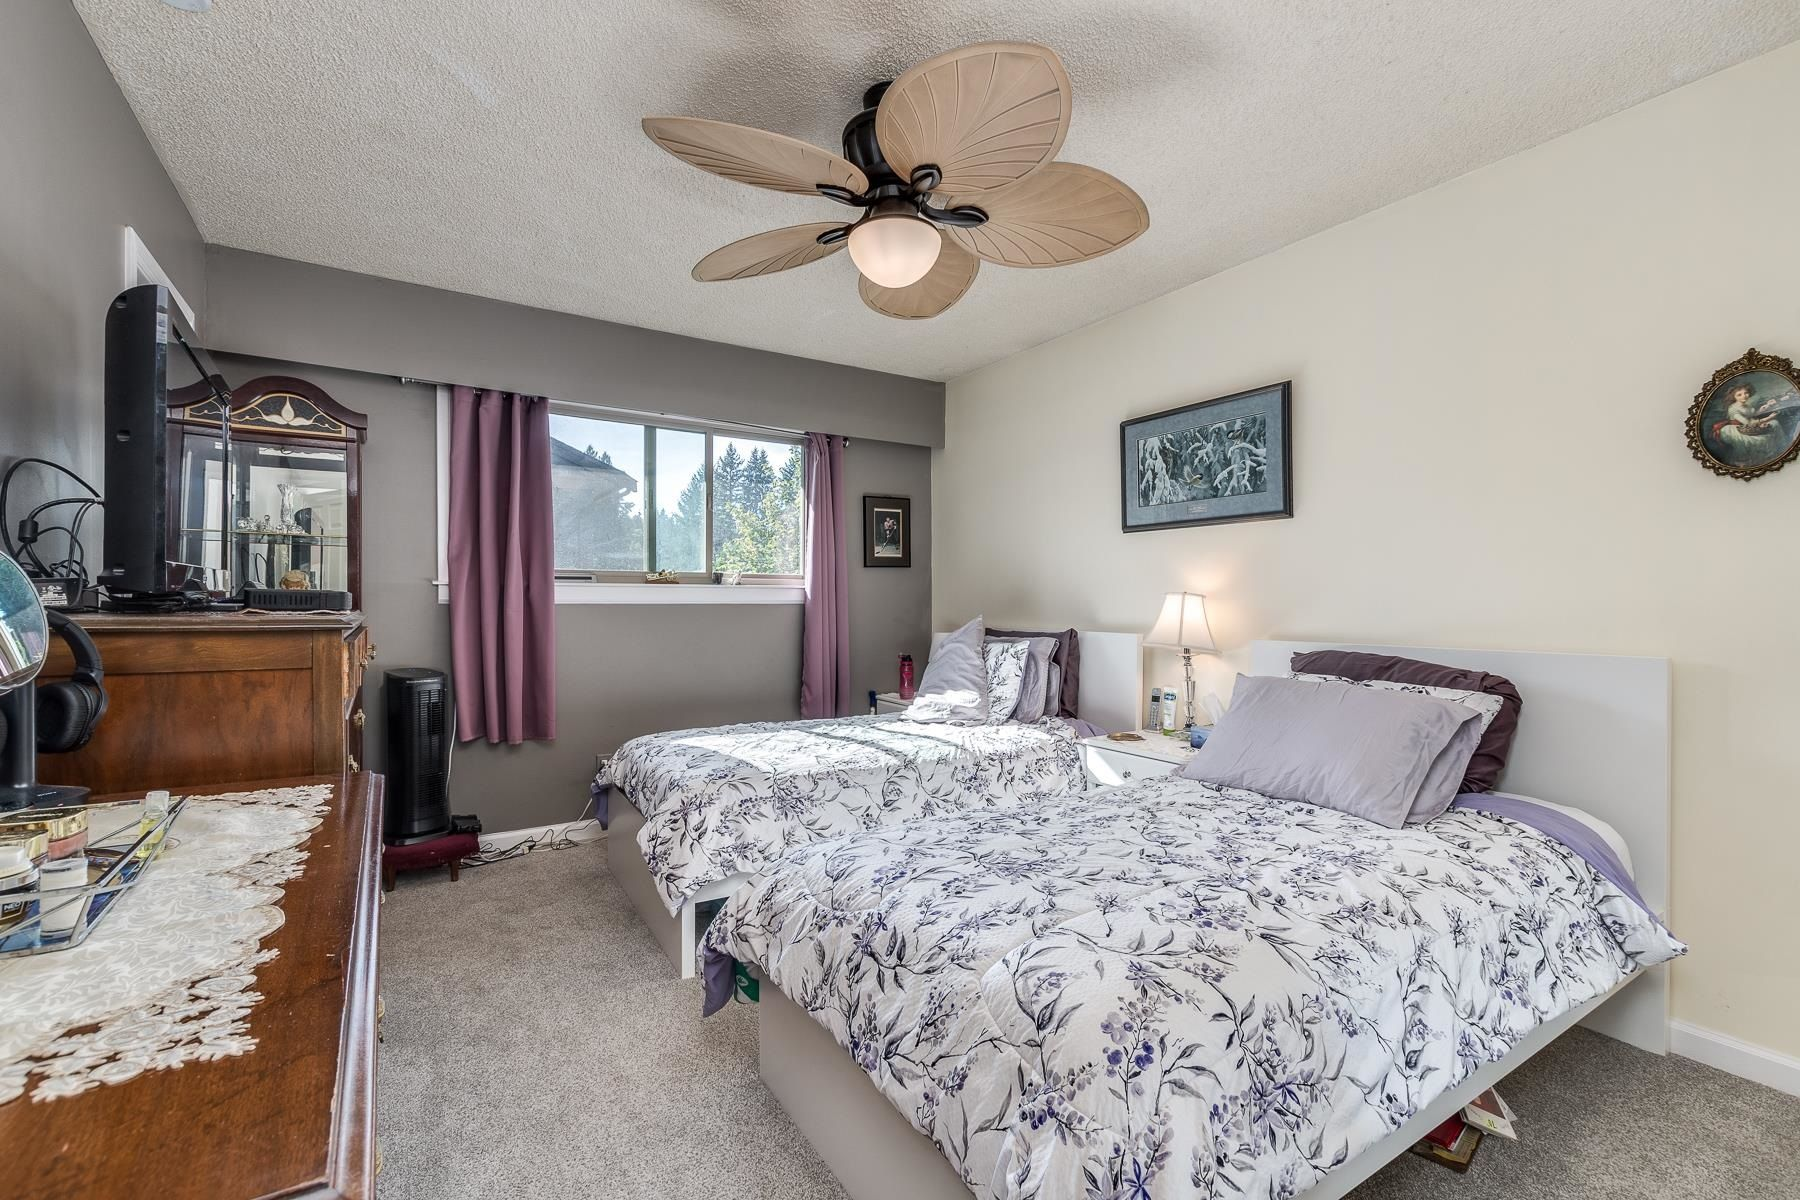 Photo 17: Photos: 3671 SOMERSET Street in Port Coquitlam: Lincoln Park PQ House for sale : MLS®# R2610216